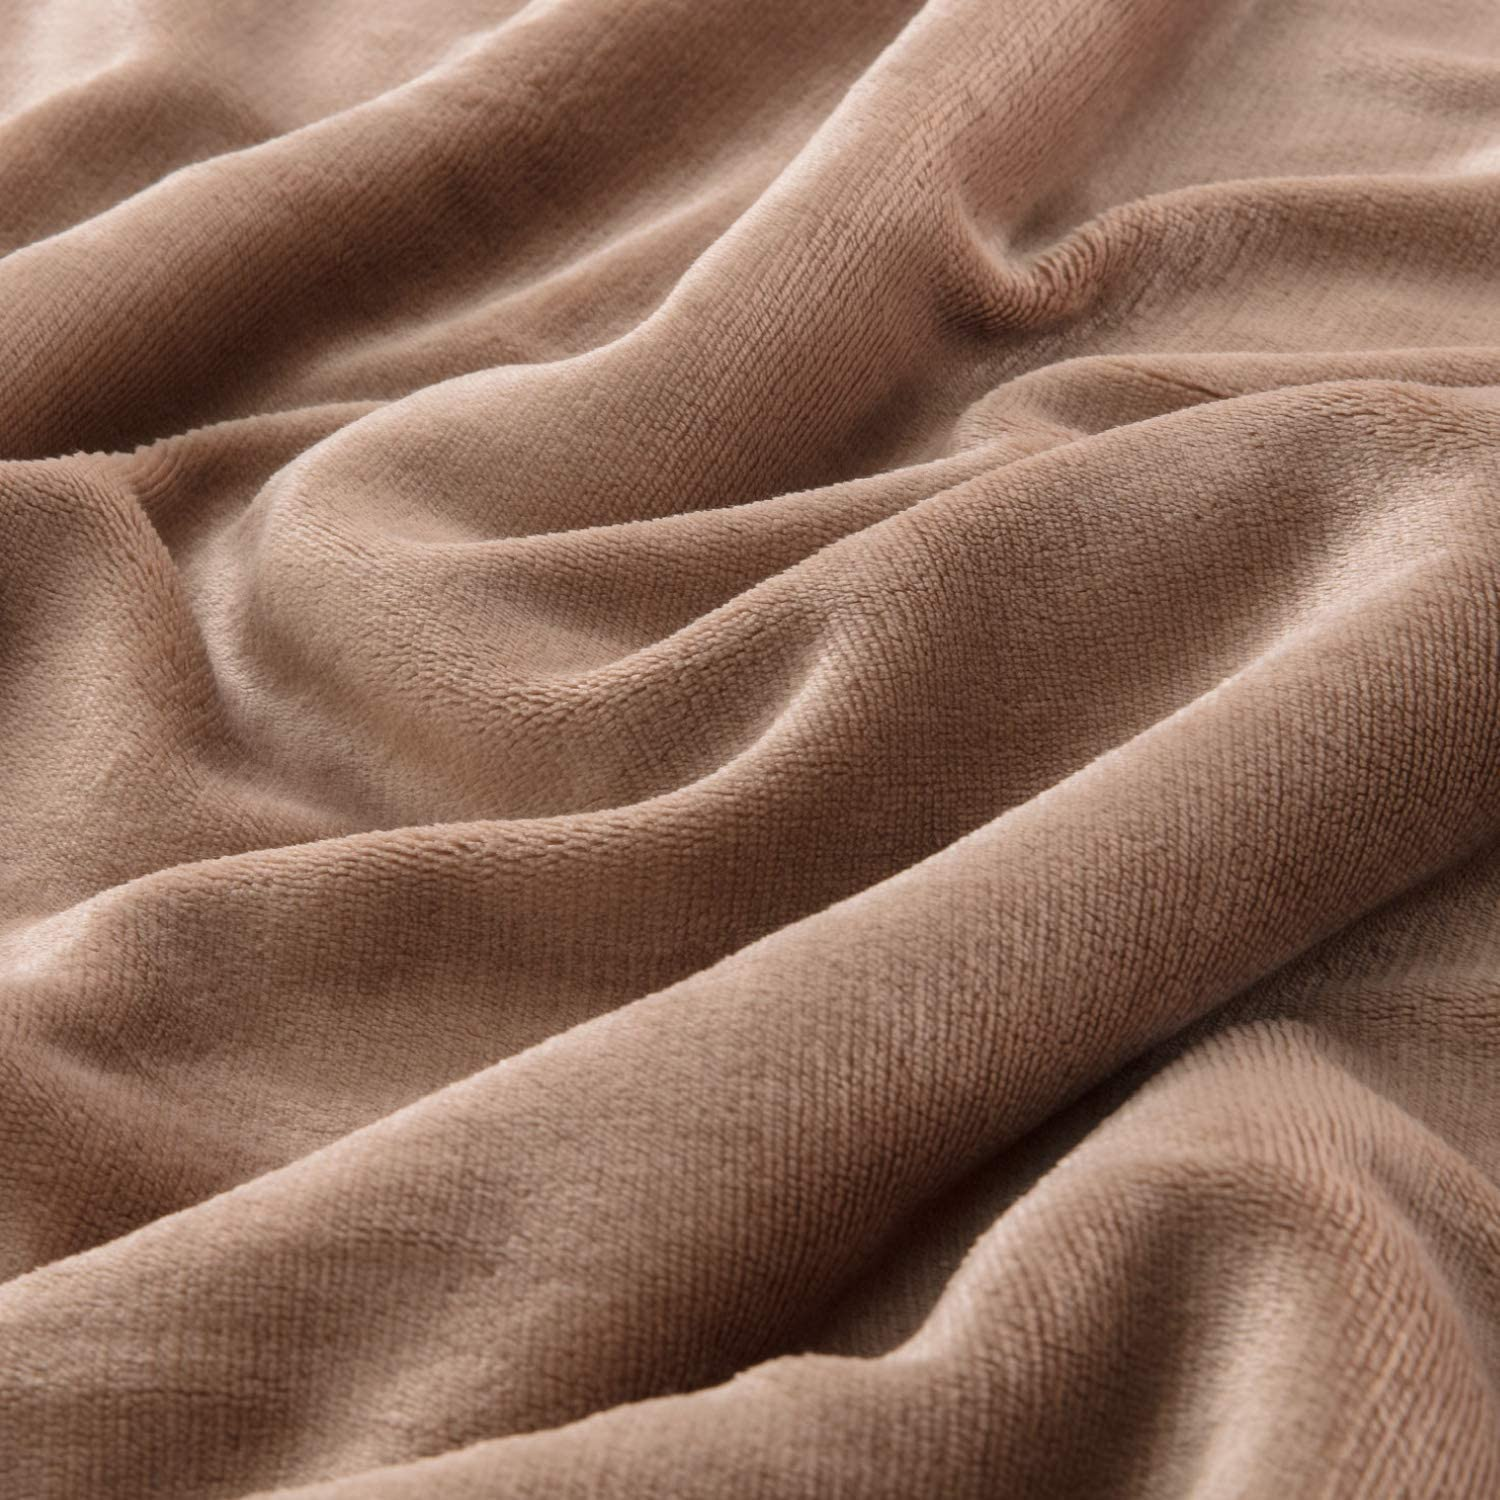 Bedsure Sherpa Blanket Brown Twin Size 60x80 Bedding Fleece Reversible Blanket for Bed and Couch